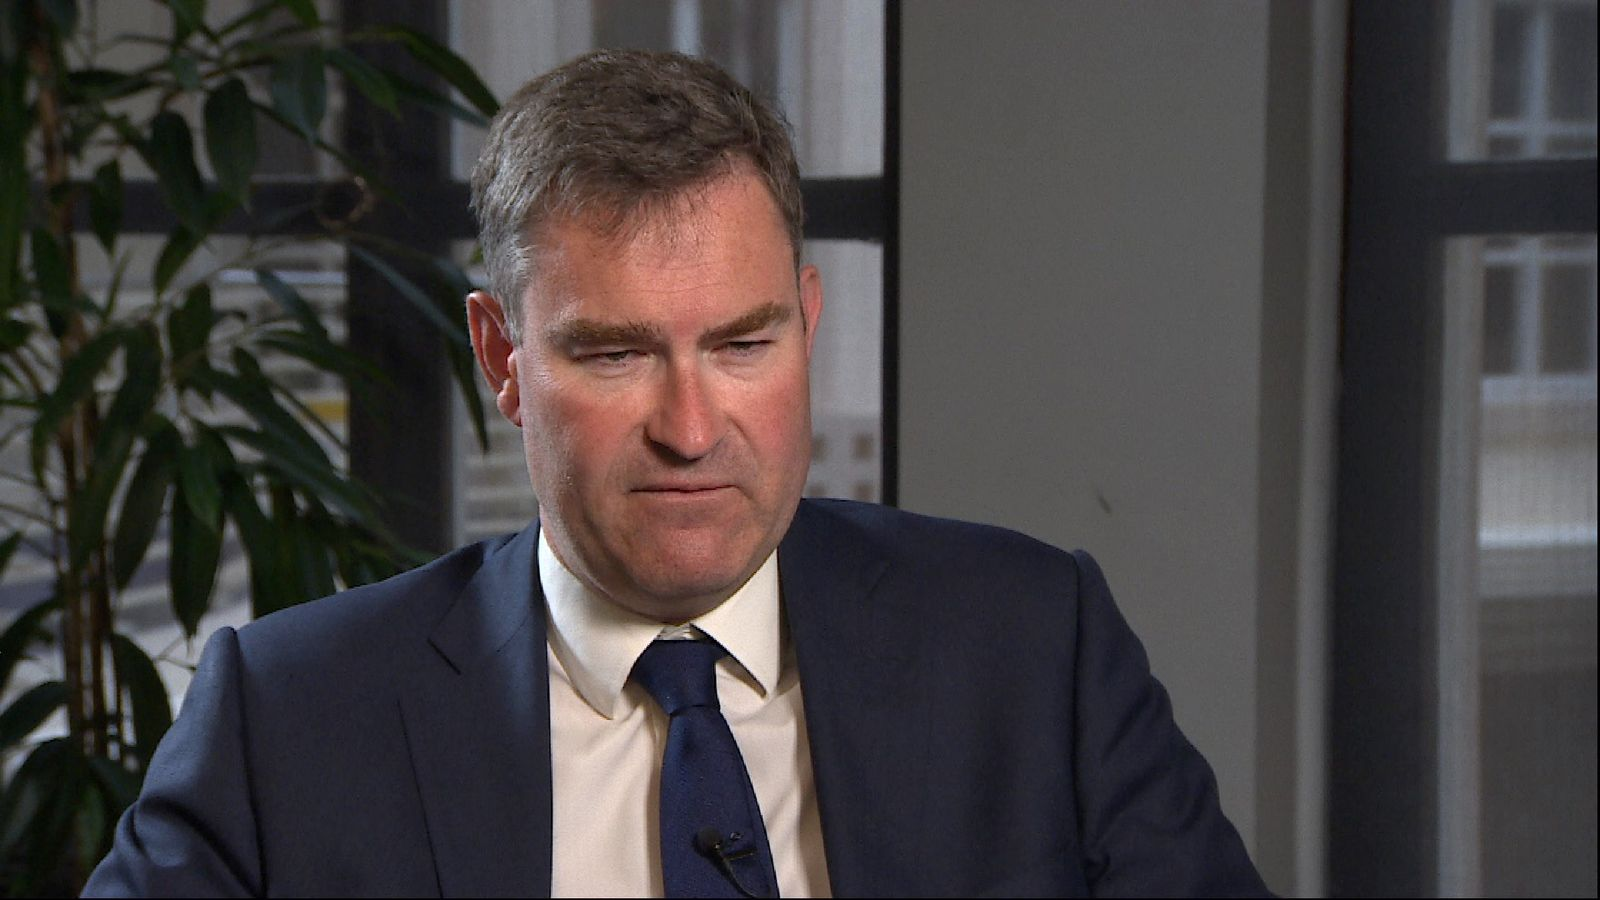 Chief secretary to the Treasury David Gauke said the proposals weren't properly funded.